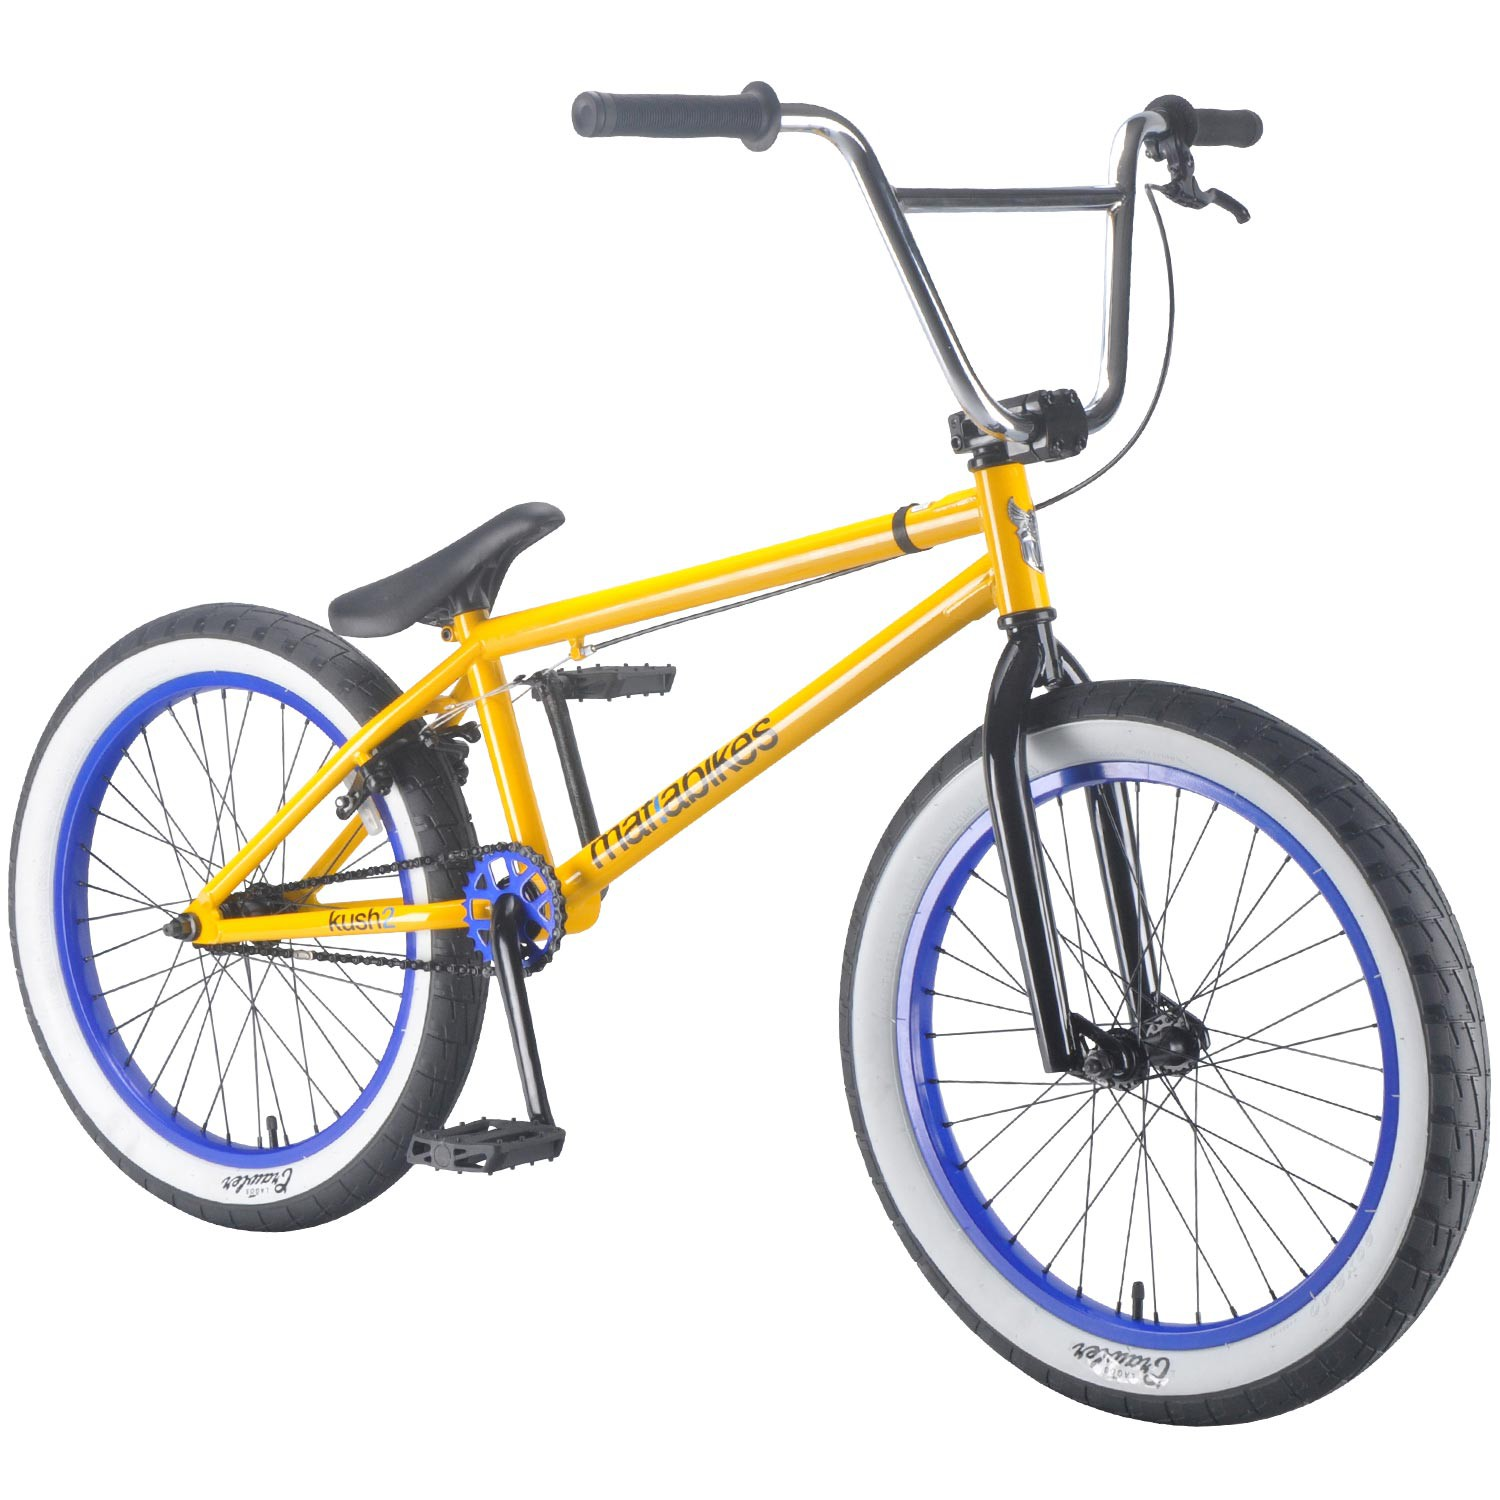 mafiabikes kush2 20 zoll bmx bike fahrrad verschiedene. Black Bedroom Furniture Sets. Home Design Ideas